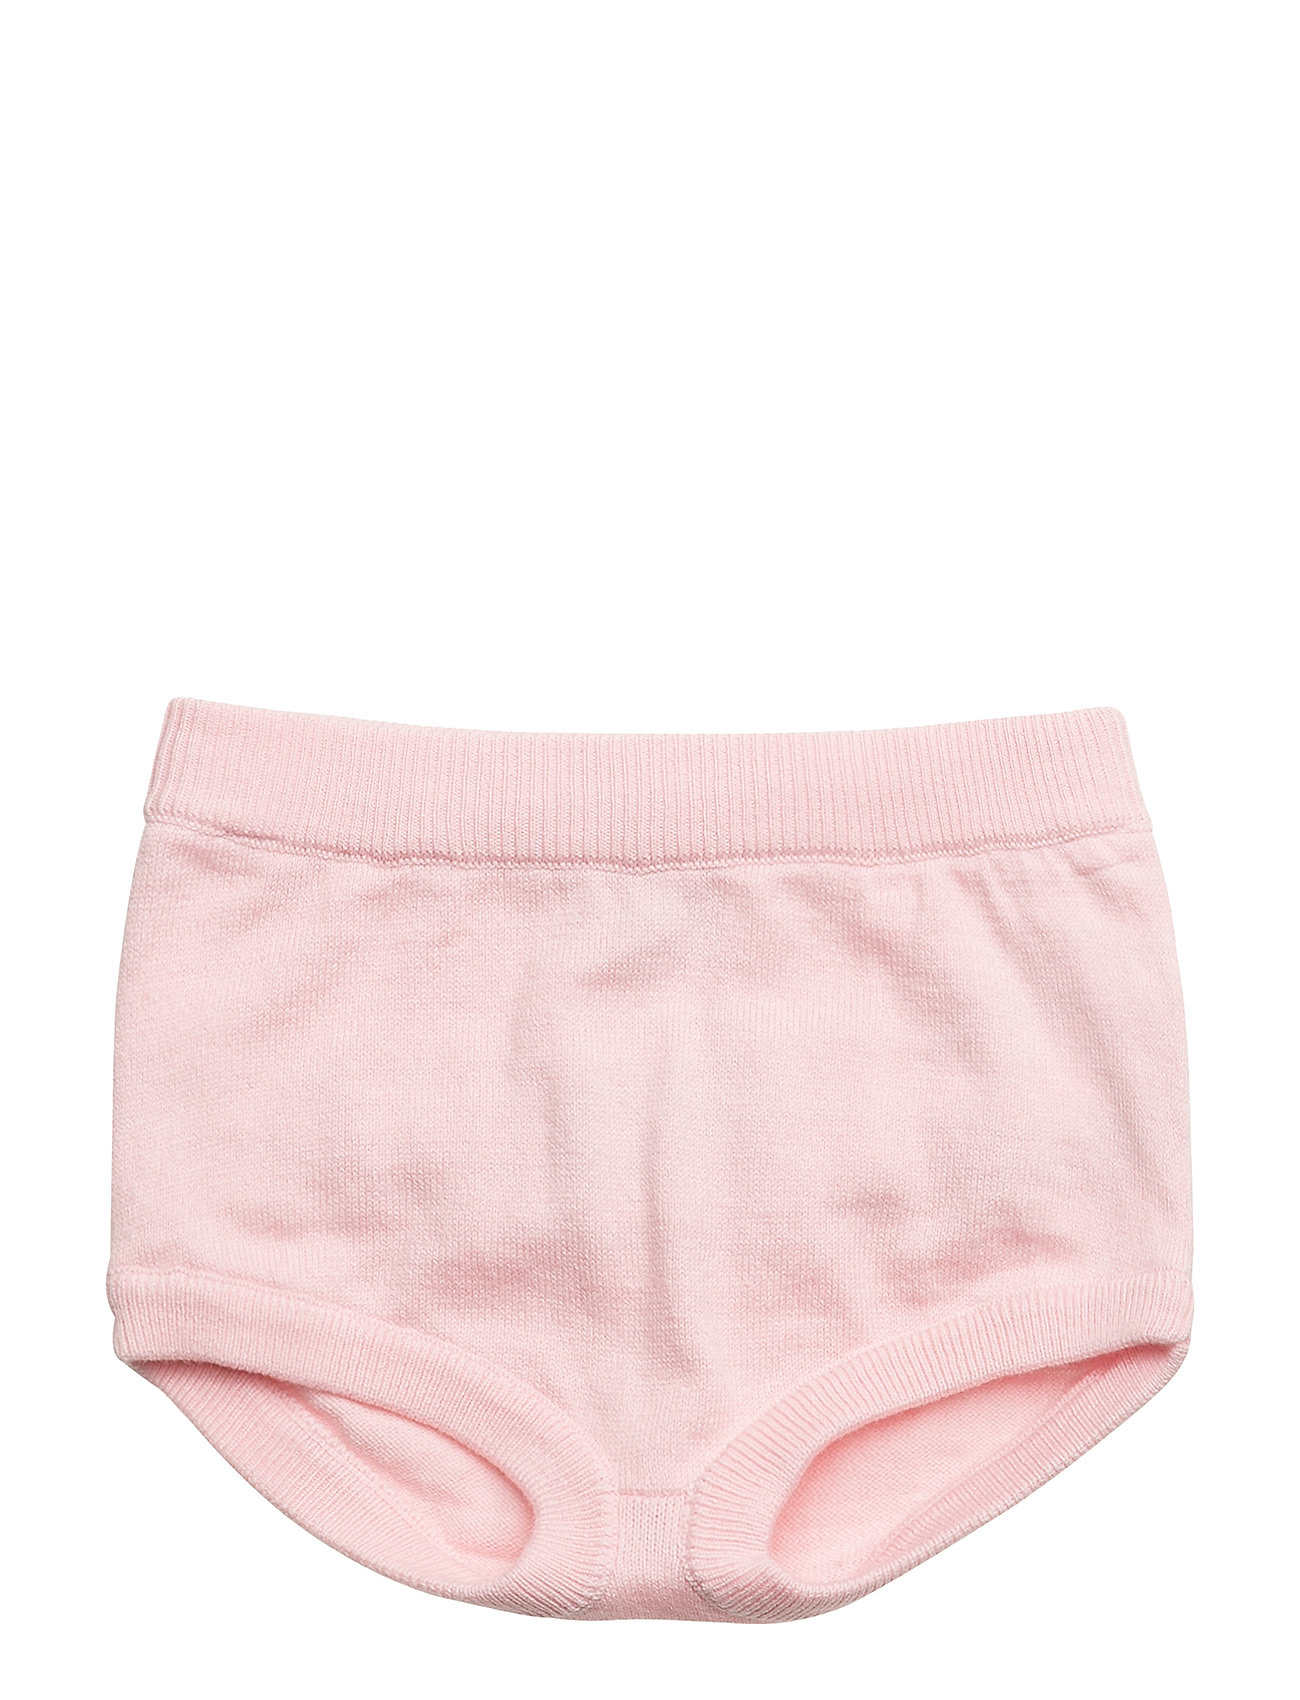 Noa Noa Miniature Shorts - PEACH BLUSH